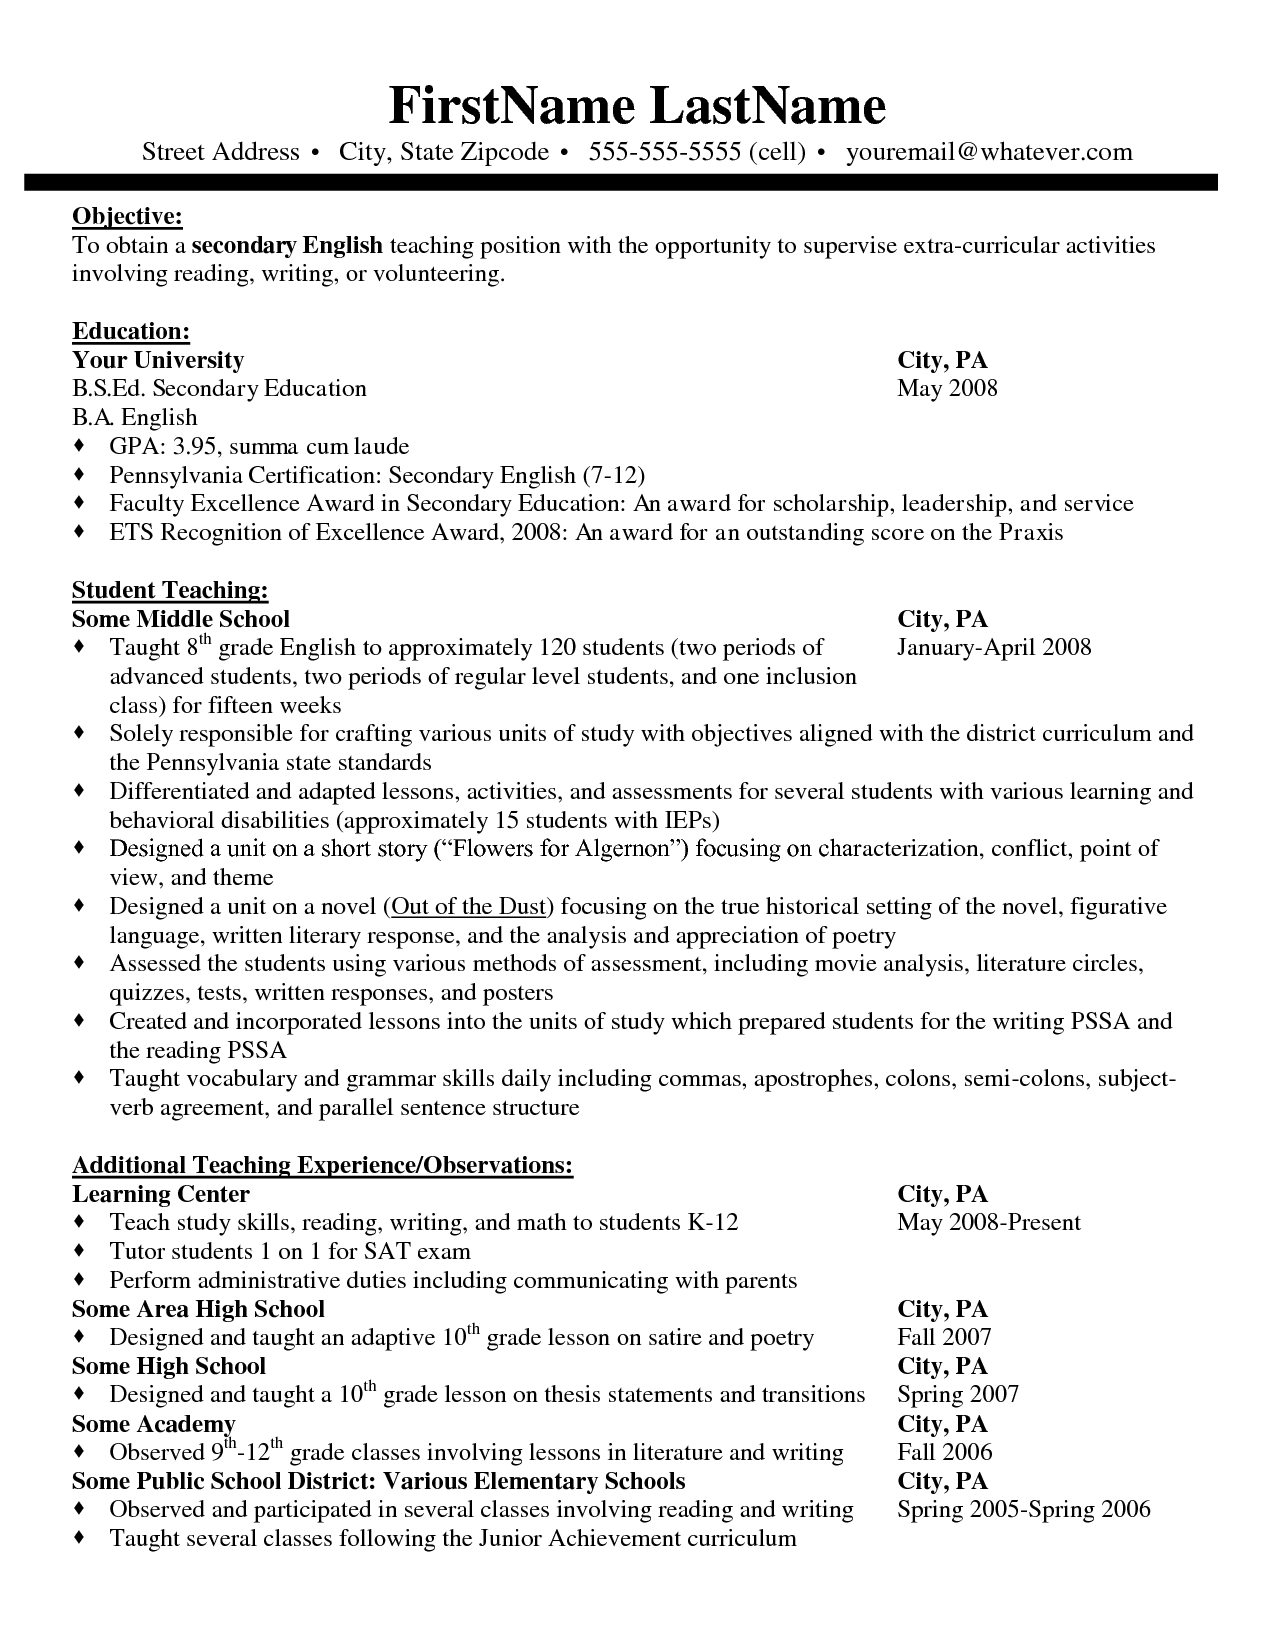 Resume Should You Put Your Gpa On Your Resume should you put gpa in resume legal resumes education section sample cv cover letter